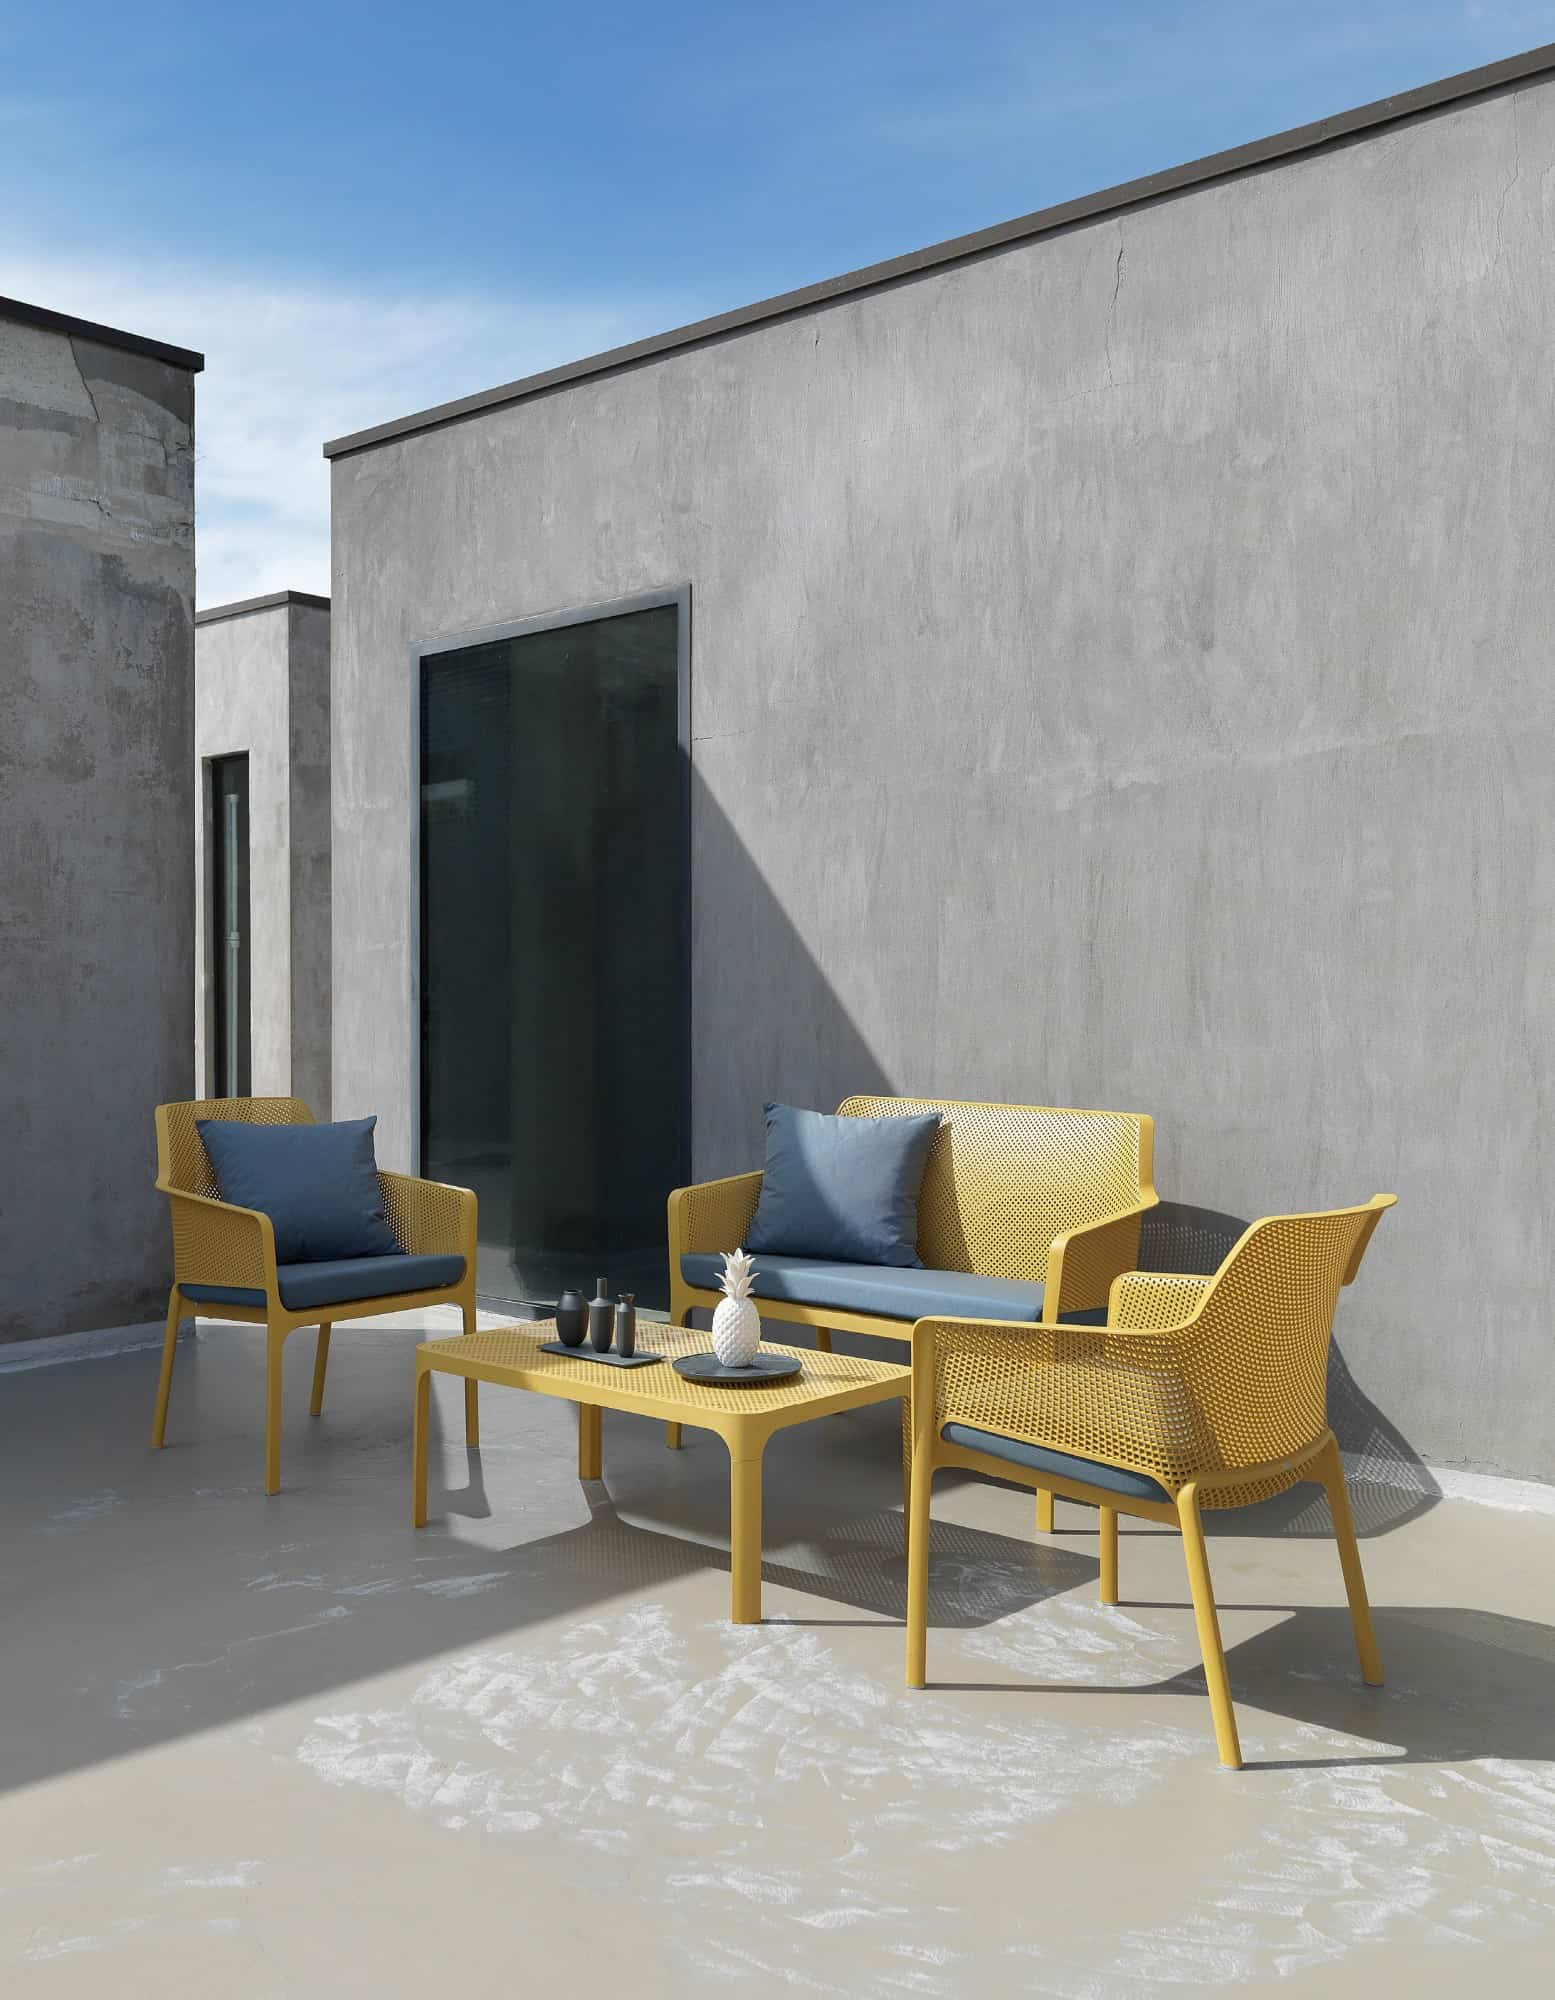 Net outdoor furniture system by Nardi 2